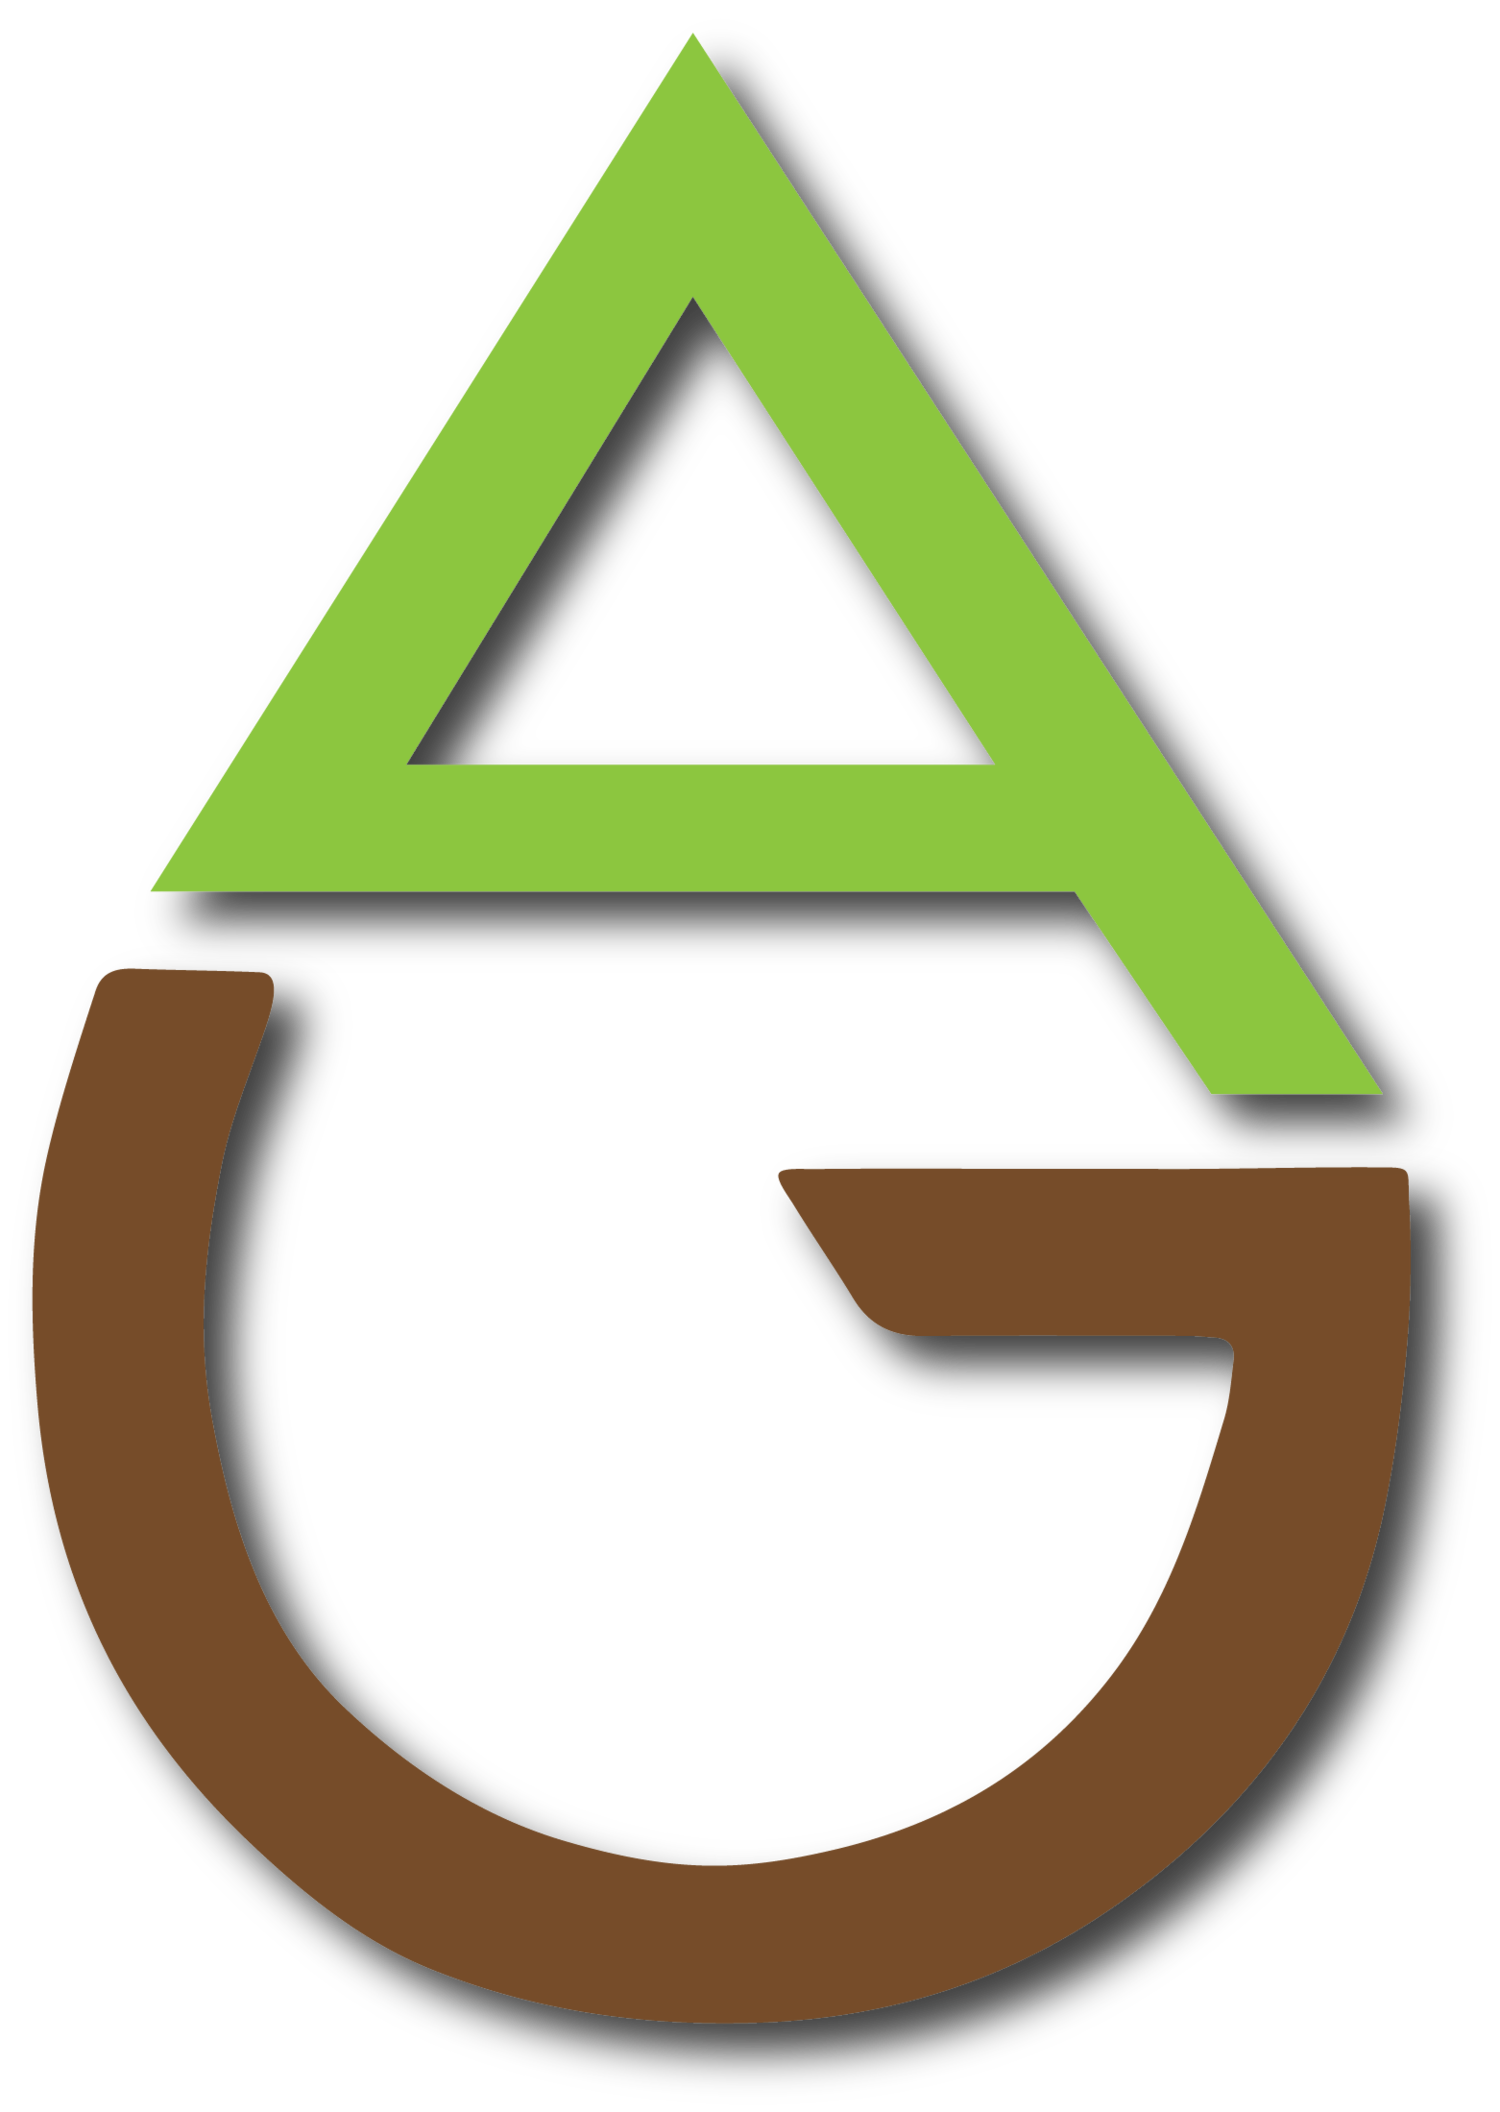 AG+droplet+green+brown+text.png